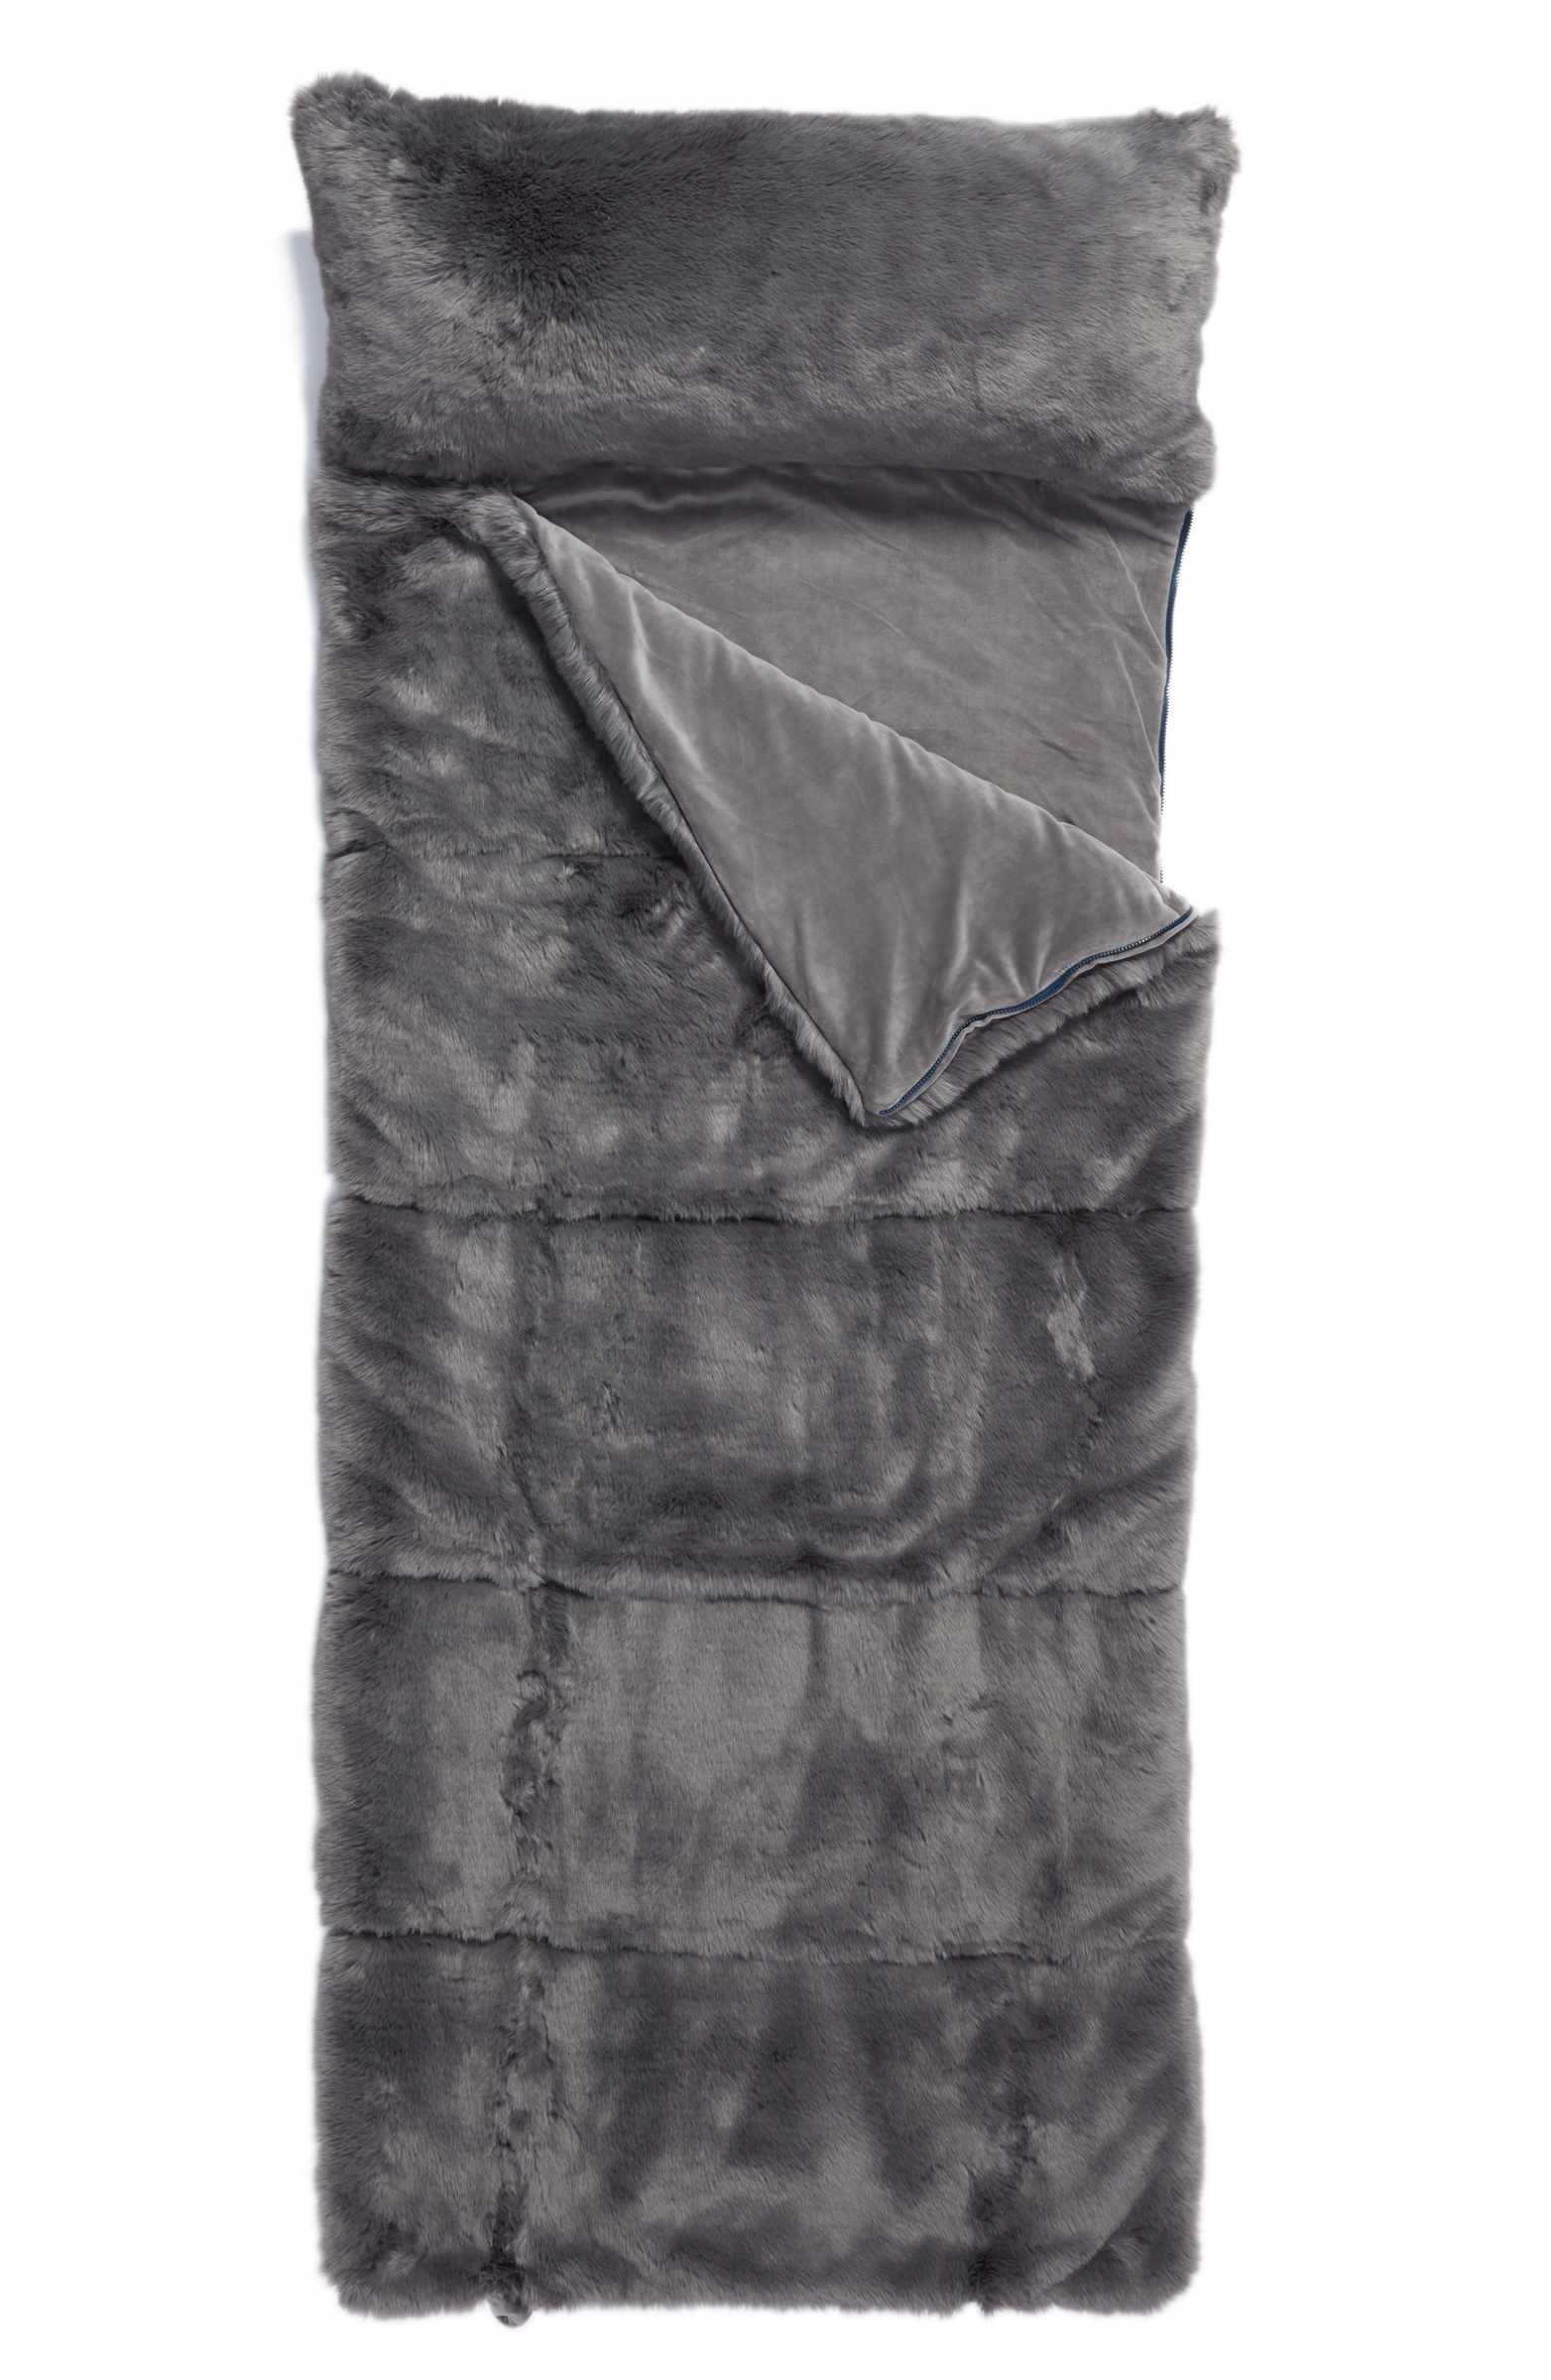 9b510142f5 Main Image - Nordstrom at Home Cuddle Up Faux Fur Sleeping Bag ...